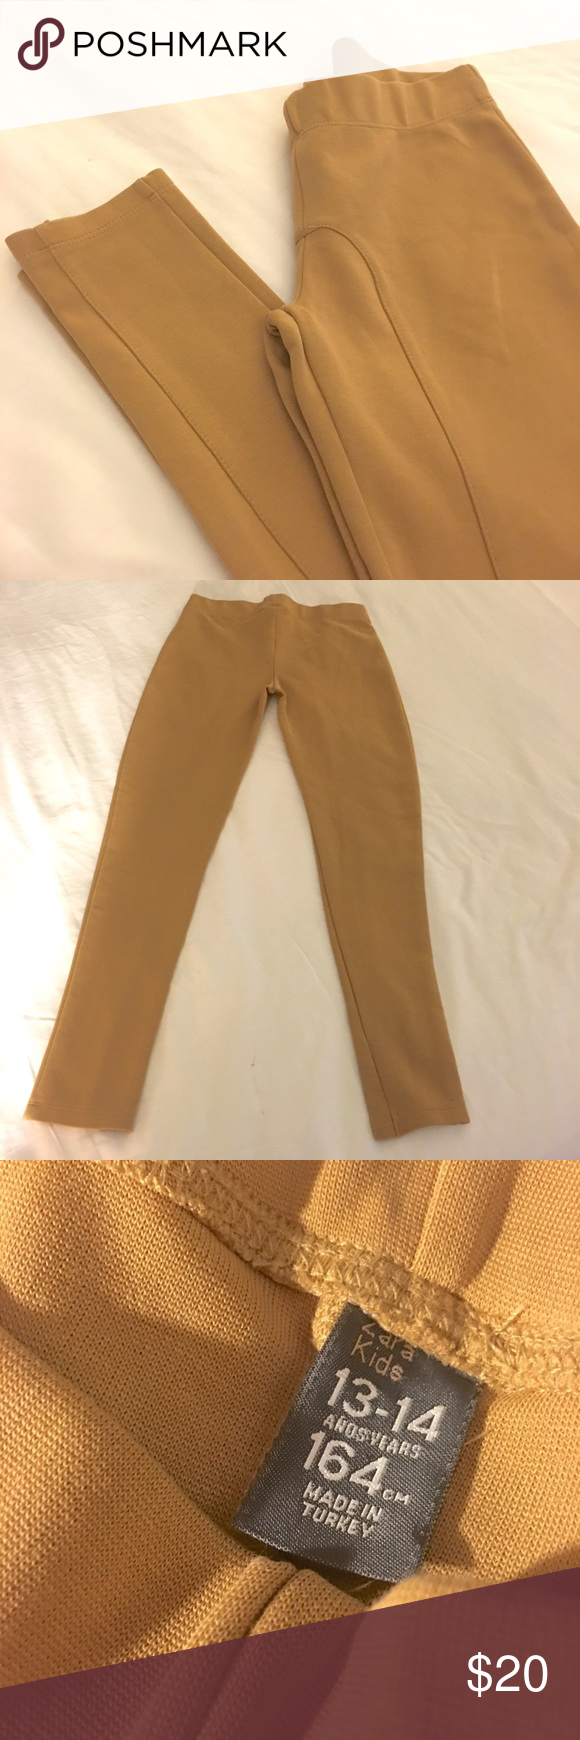 Zara Kids Camel Leggings / Riding Pants Gorgeous Zara Kids Camel Leggings / Riding Pants. High Quality!  Made in Turkey. Size 13-14 Girls. 164 cm. Perfect Fall Leggings with Tall Boots or Booties.  NWOT. Pristine condition. Zara Bottoms Leggings